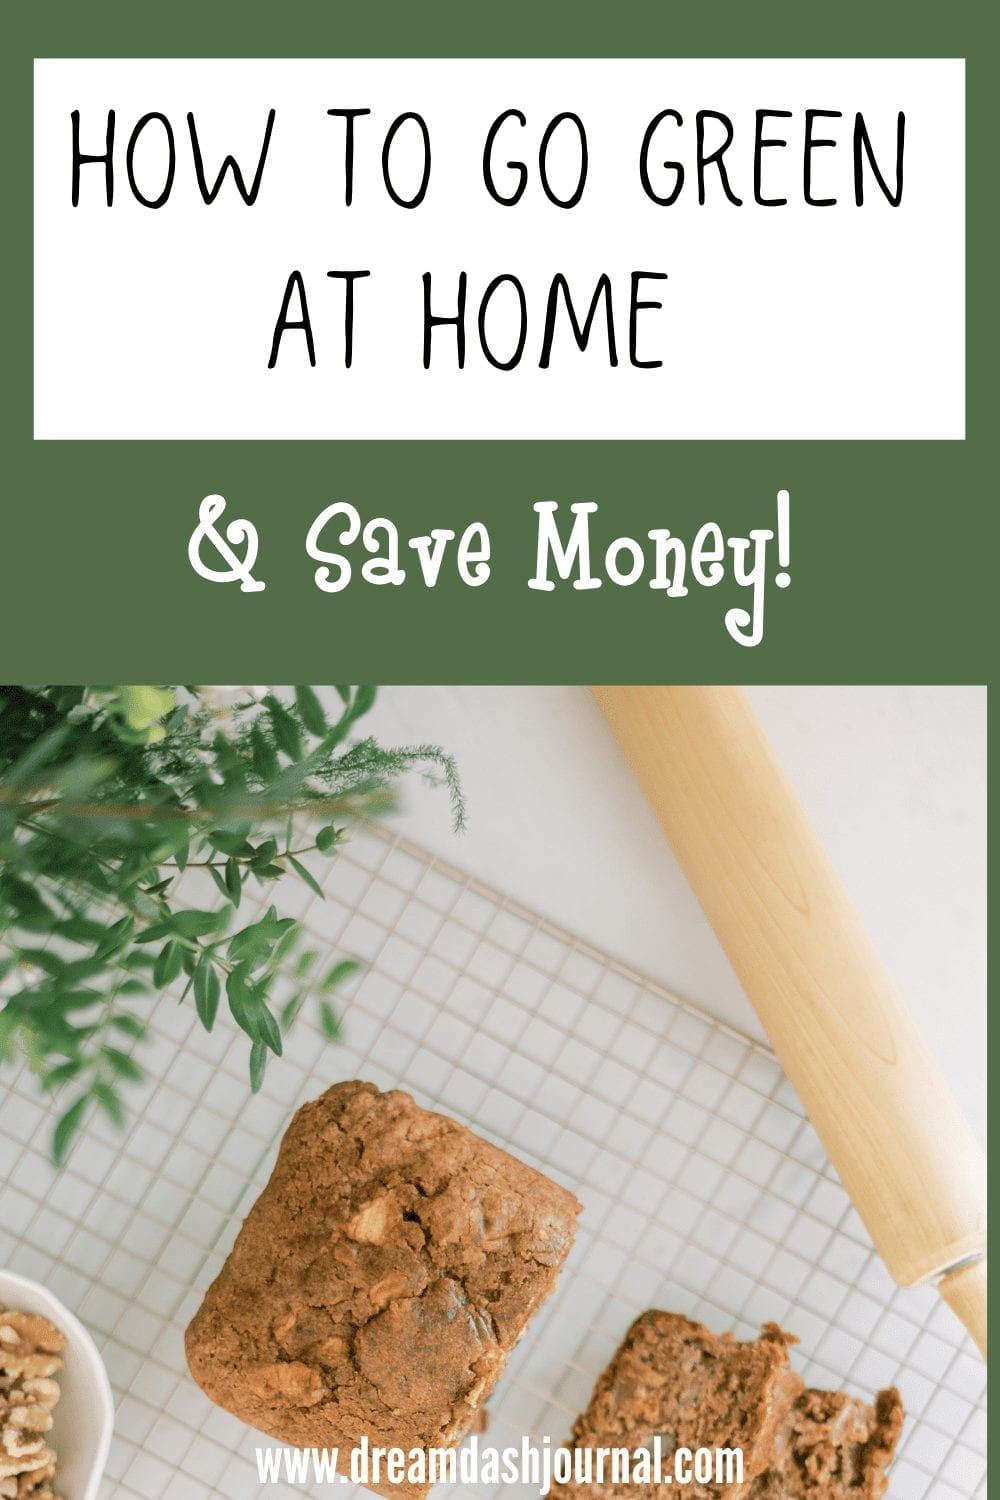 How to Go Green at Home While Saving Money